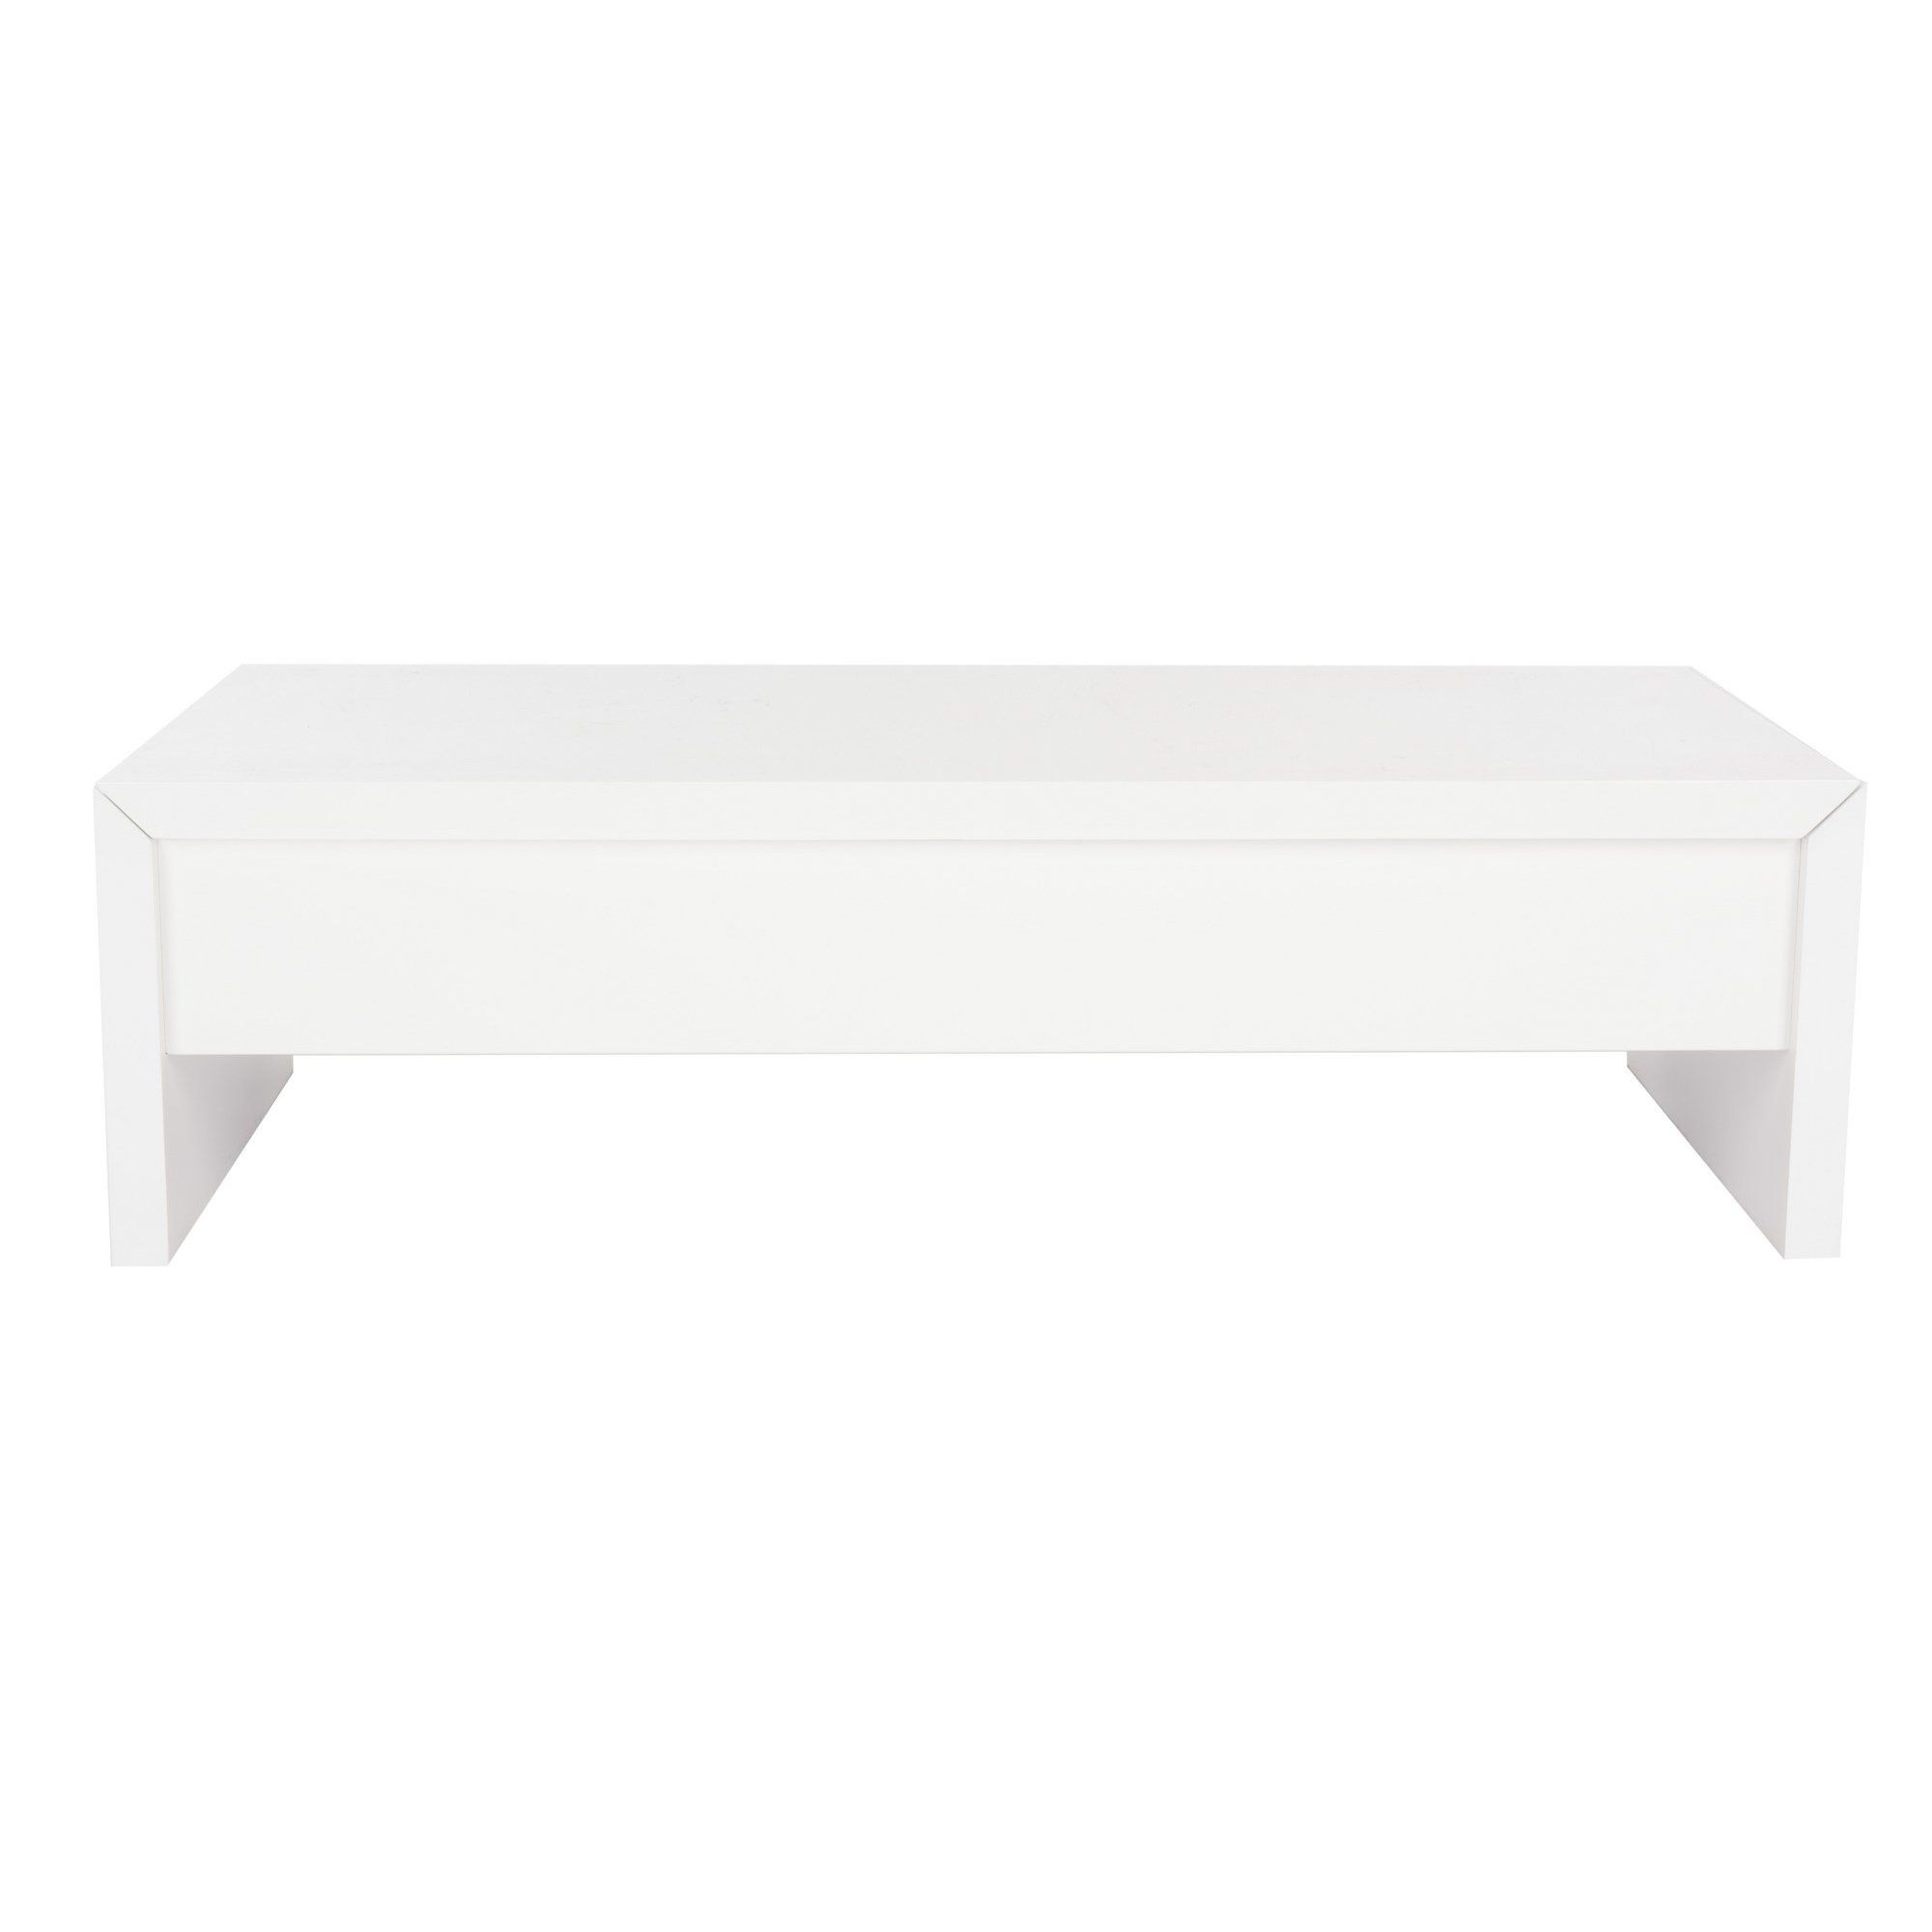 Jason Lift Top Extendable Coffee Table With Storage Coffee Table With Storage Coffee Table White Coffee Table [ 2000 x 2000 Pixel ]